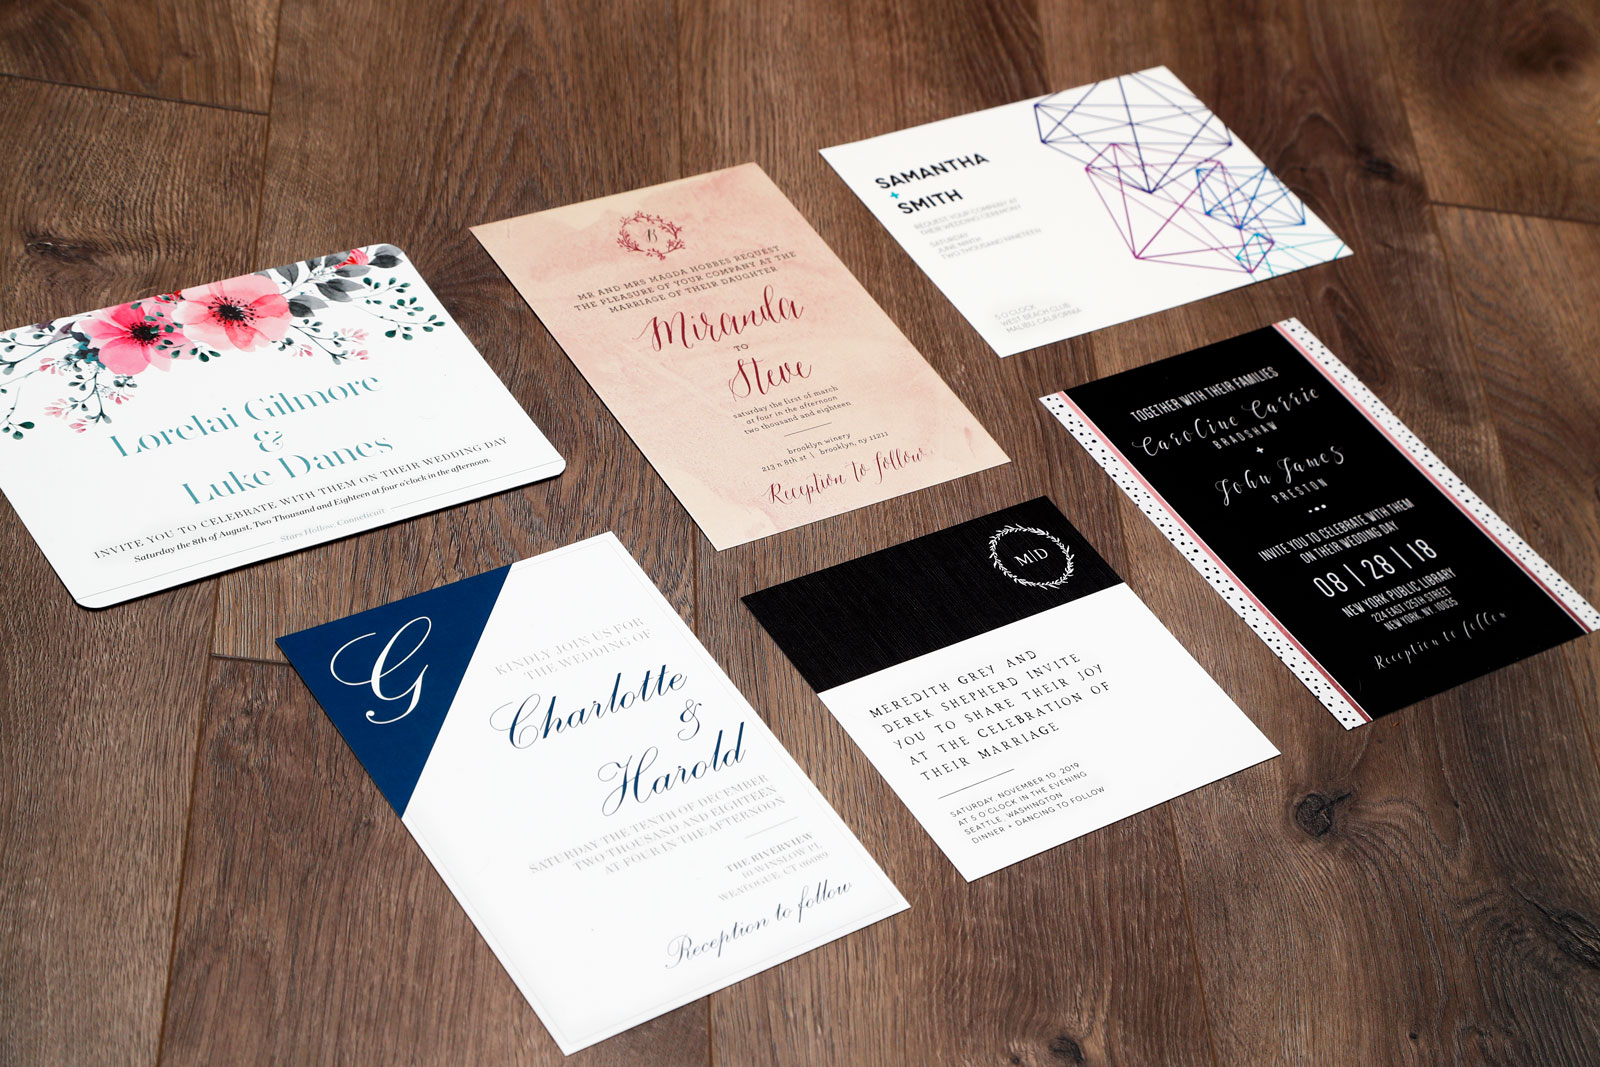 Weddings by Shift+7 Design